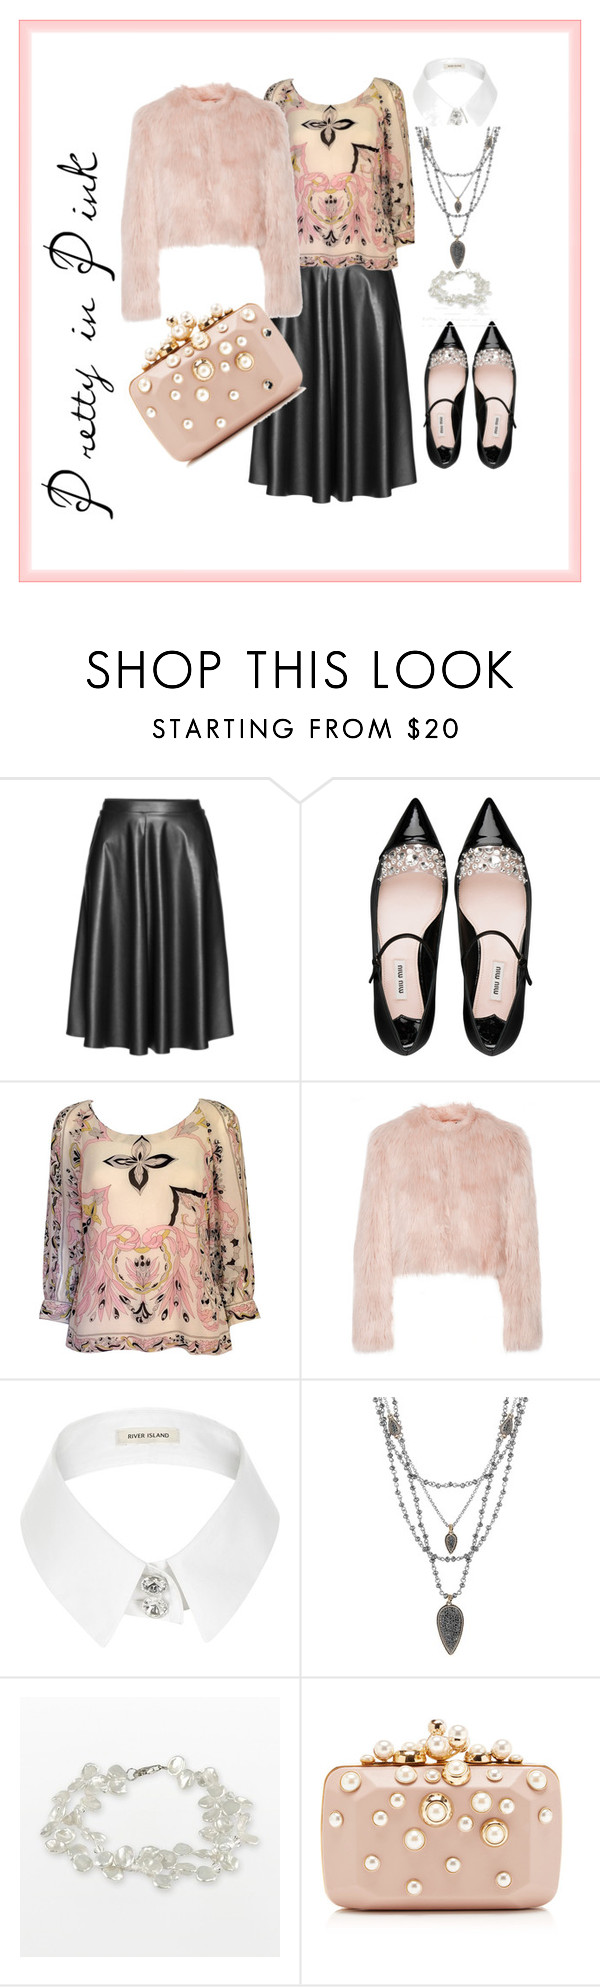 """""""Pretty in Pink"""" by tweedleduh on Polyvore featuring Persona, Miu Miu, Emilio Pucci, RED Valentino, River Island, Lucky Brand, Elie Saab, plussize, plussizefashion and curvesarebeautiful"""